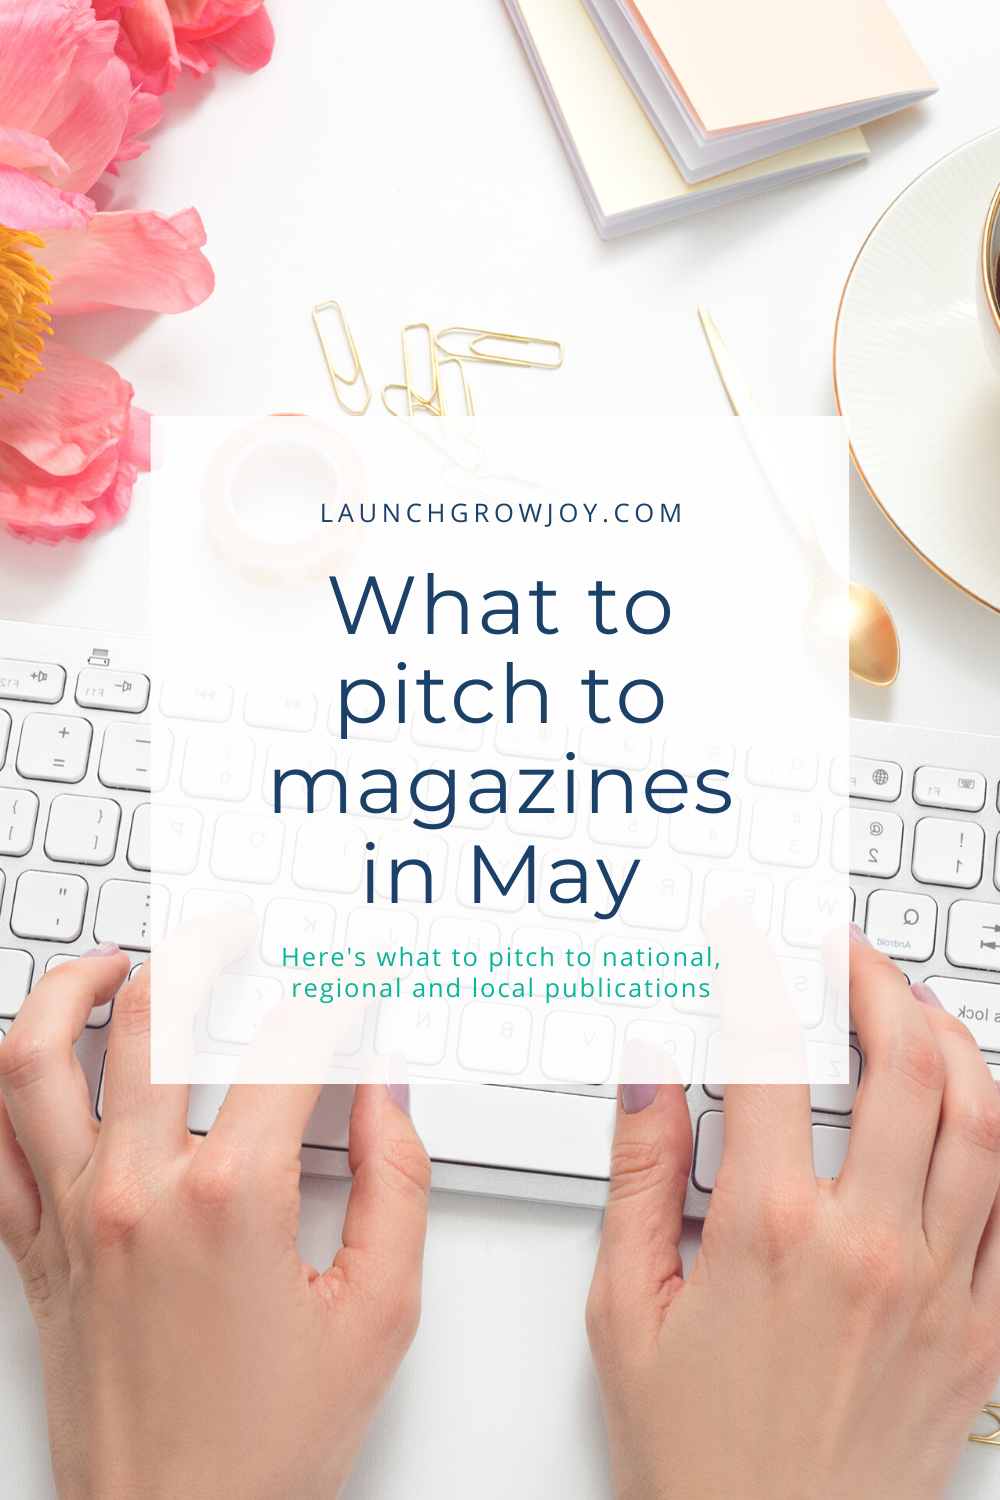 What to pitch magazines in May